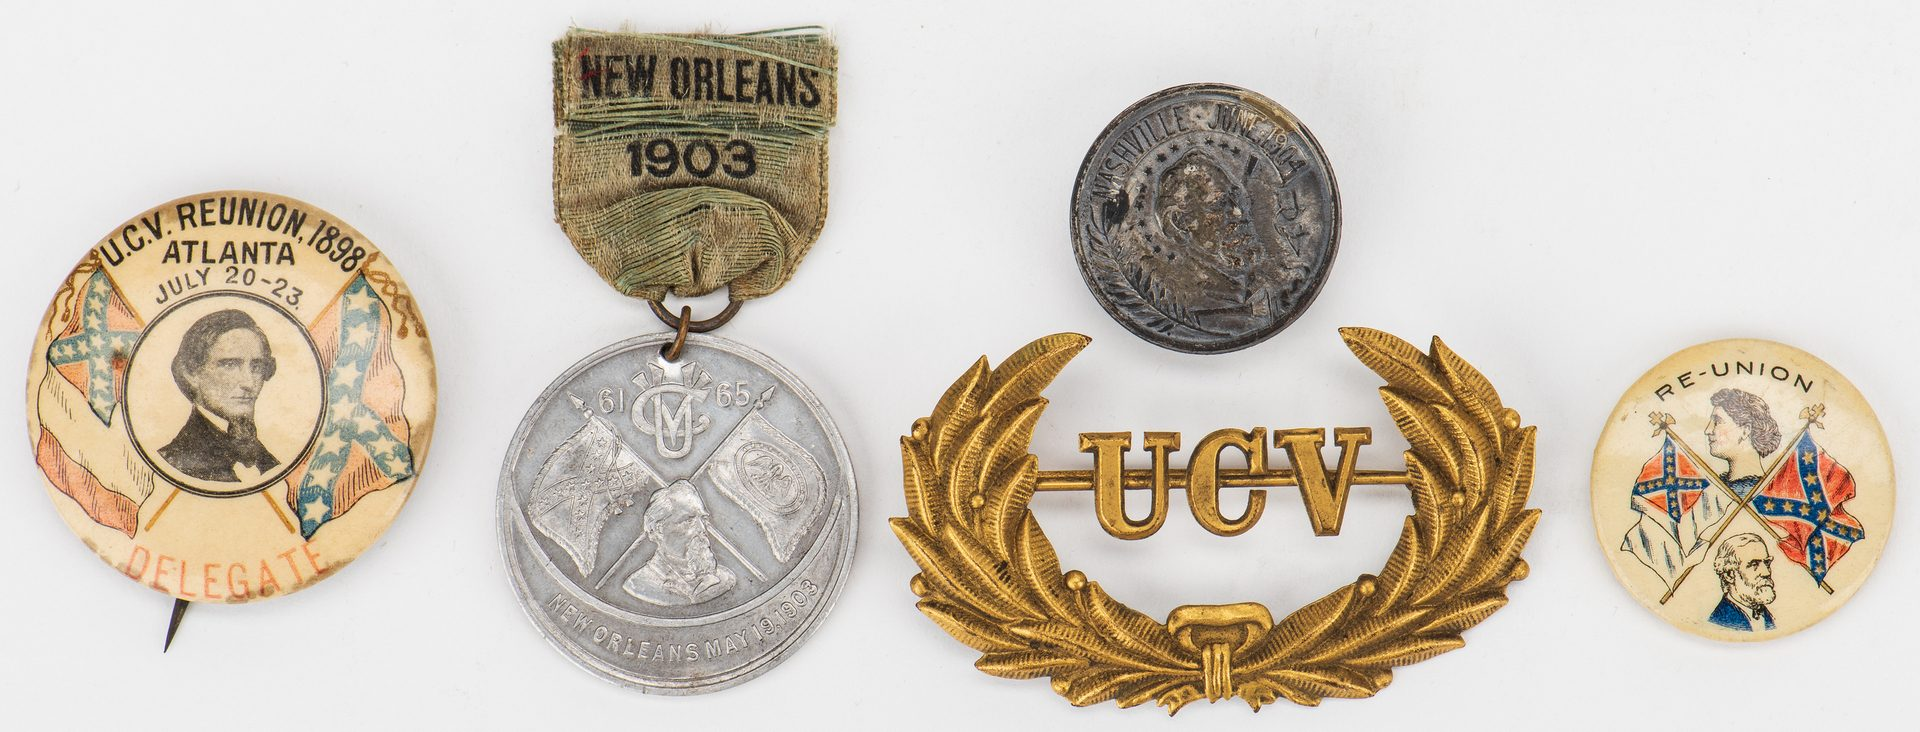 Lot 547: 9 UCV Ribbons, Badges, Buttons